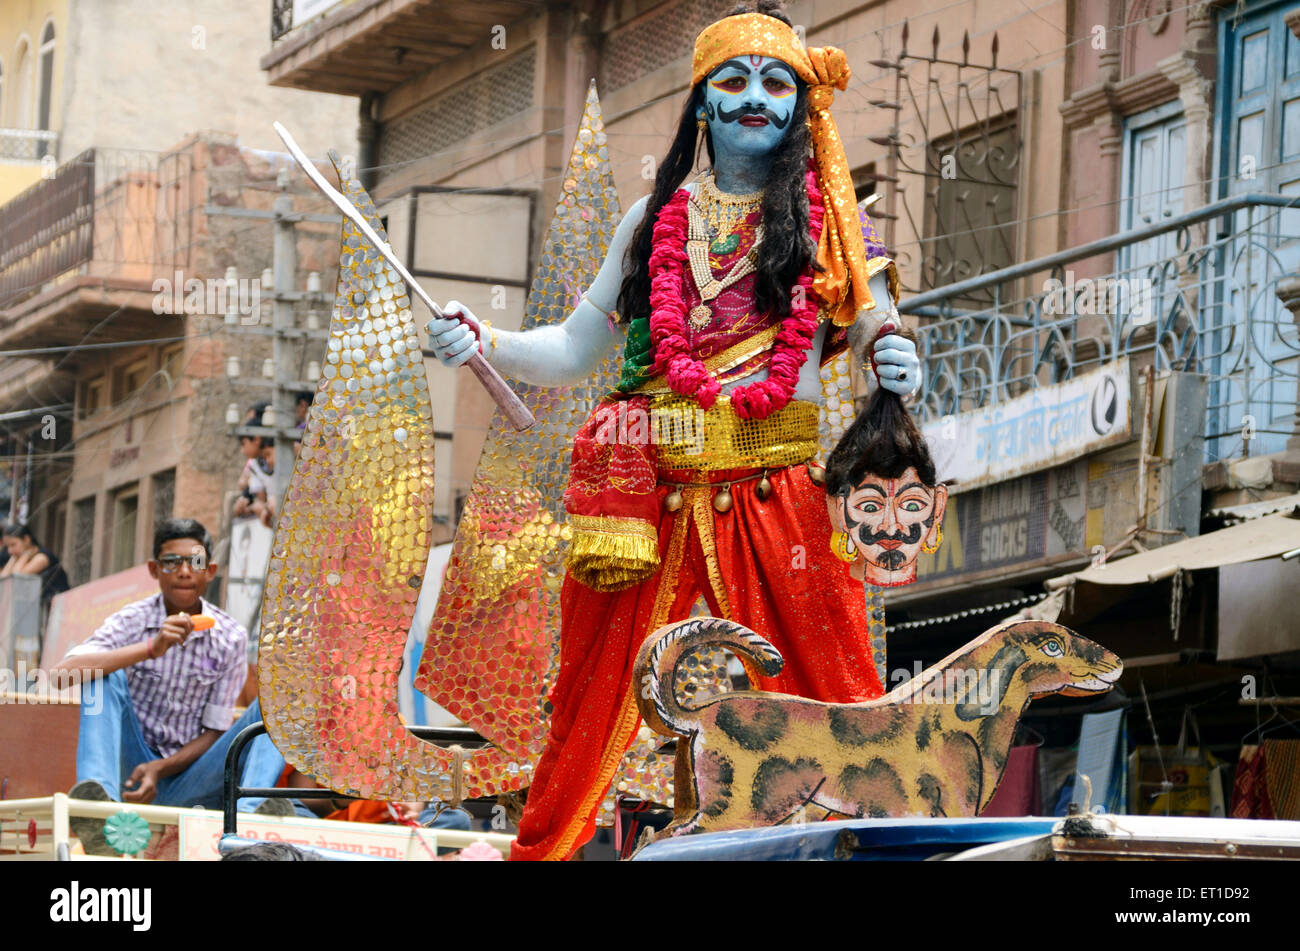 A man in disguise of some avtar in procession of Ramnavami Jodhpur Rajasthan India no mr - Stock Image